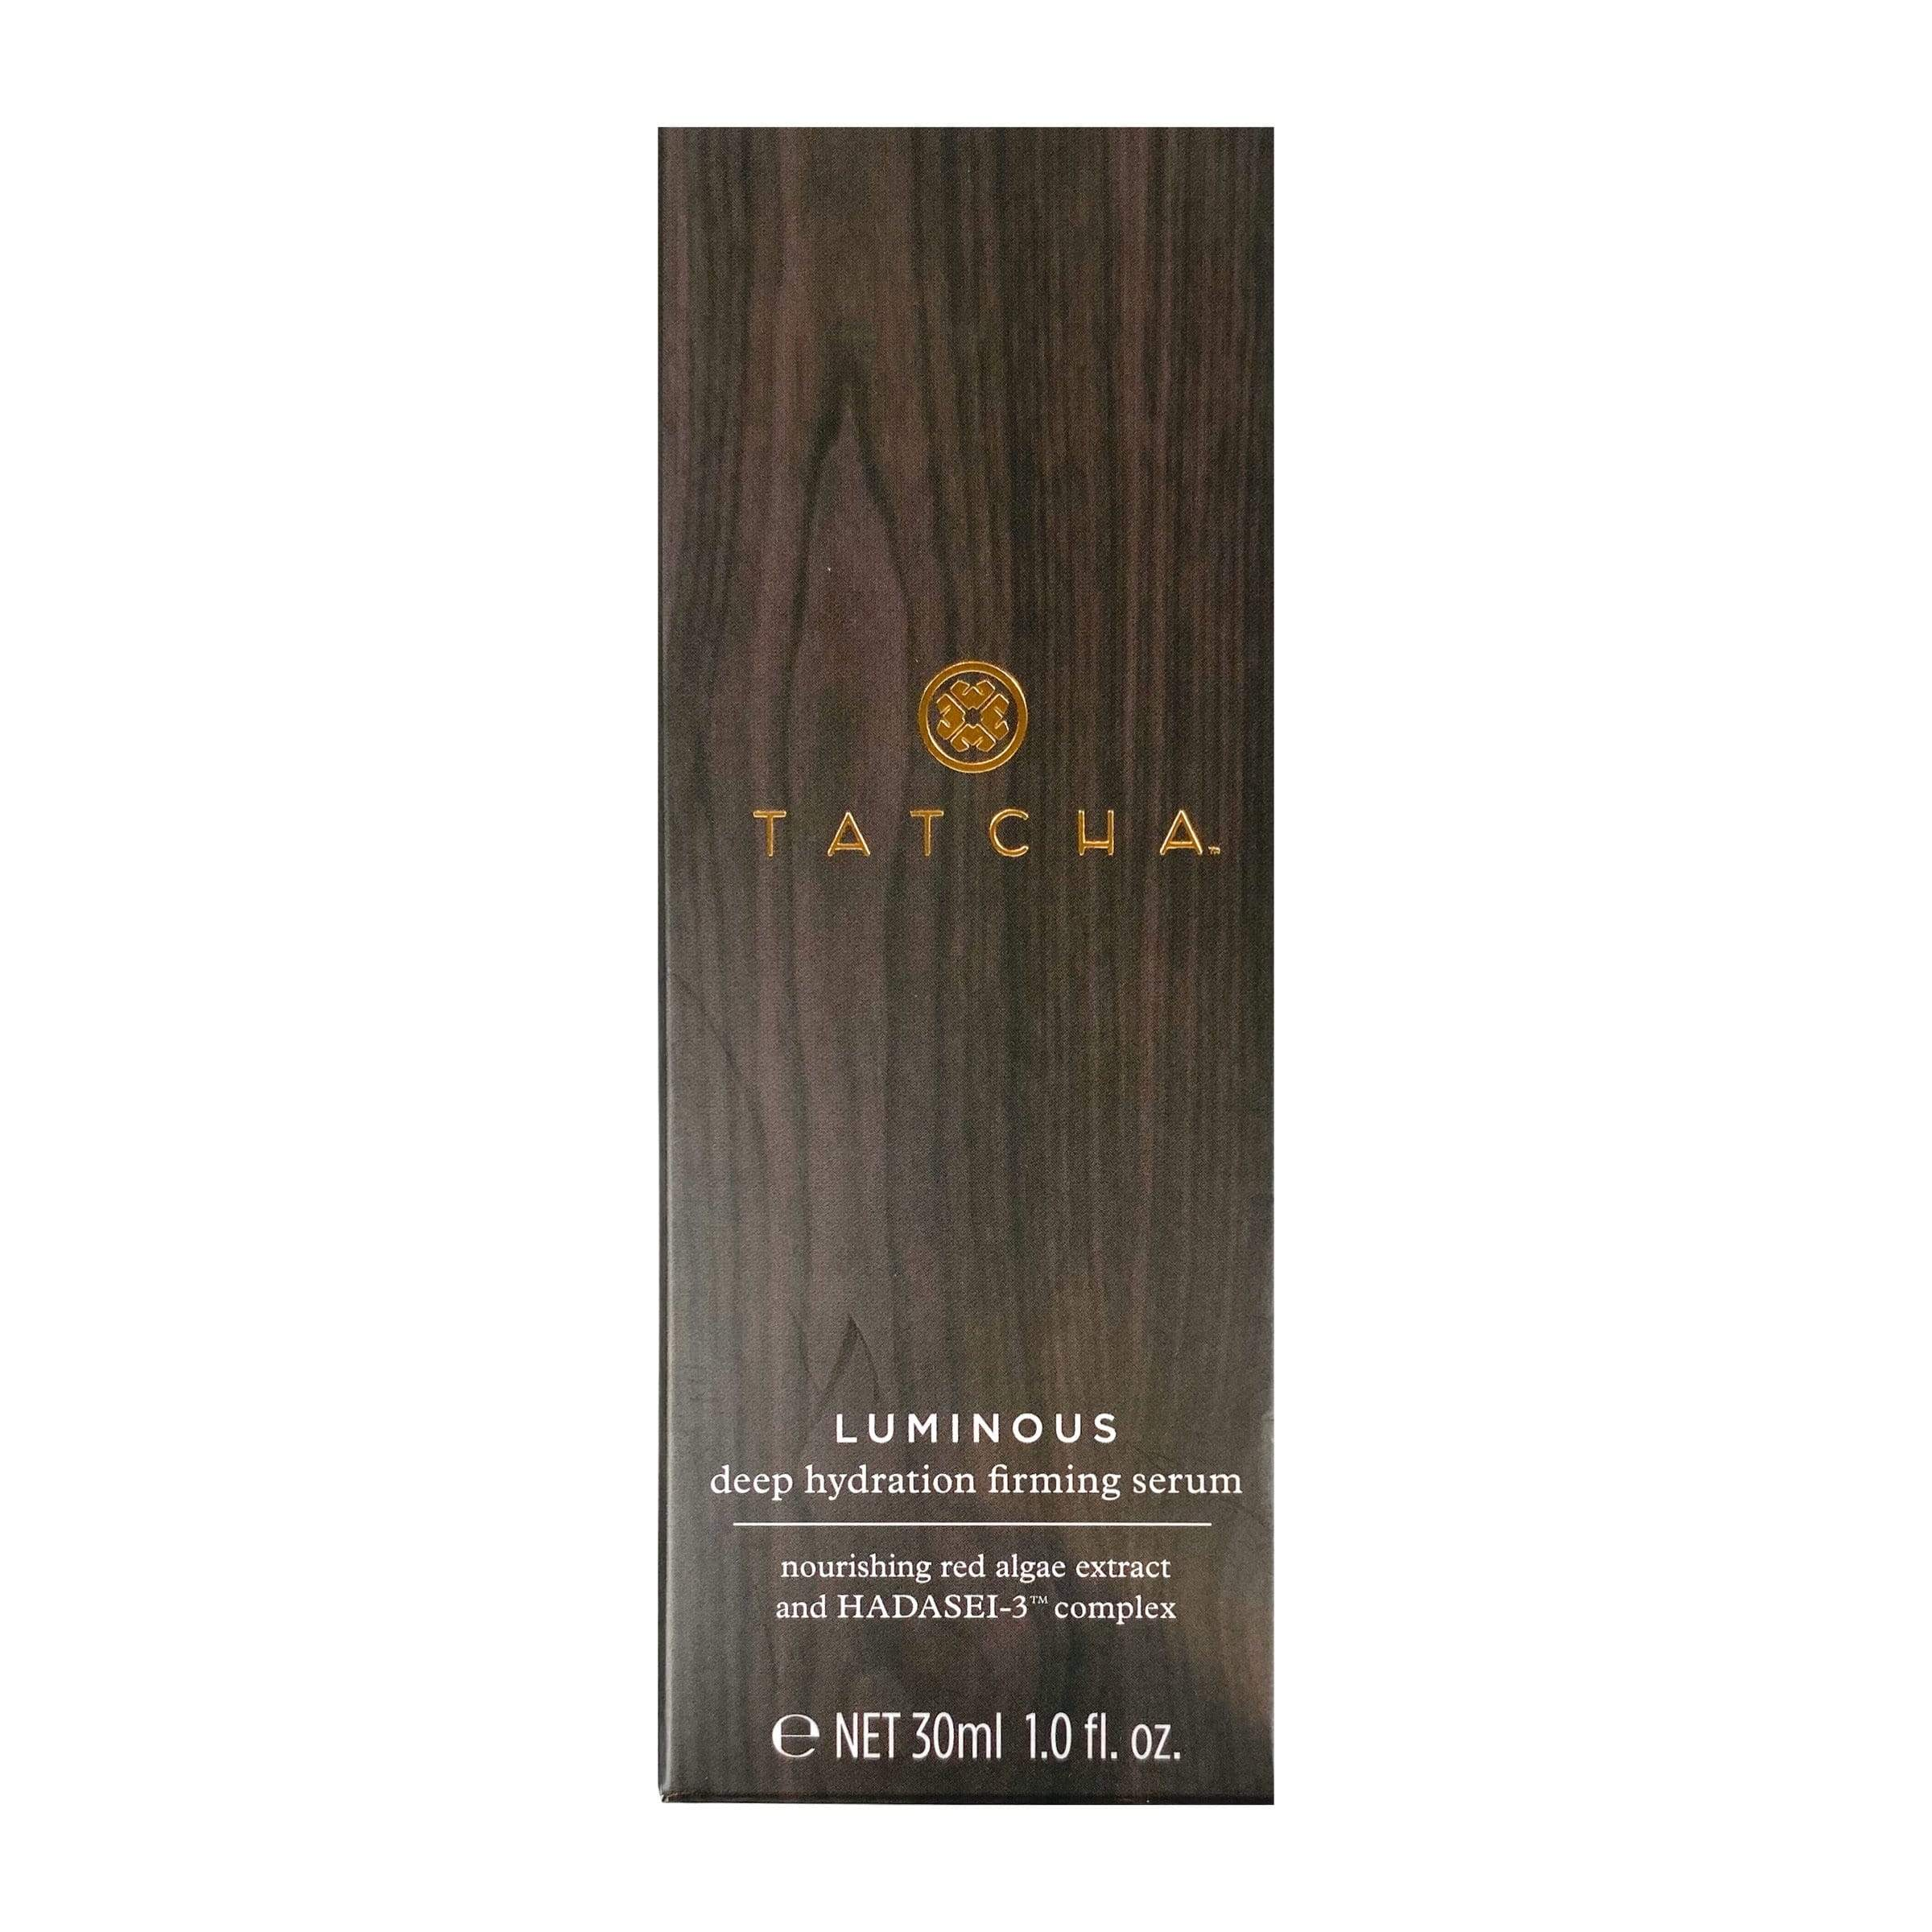 Tatcha Luminous Deep Hydration Firming Serum (30 ml | 1.0 fl. oz.), Skin Care, London Loves Beauty